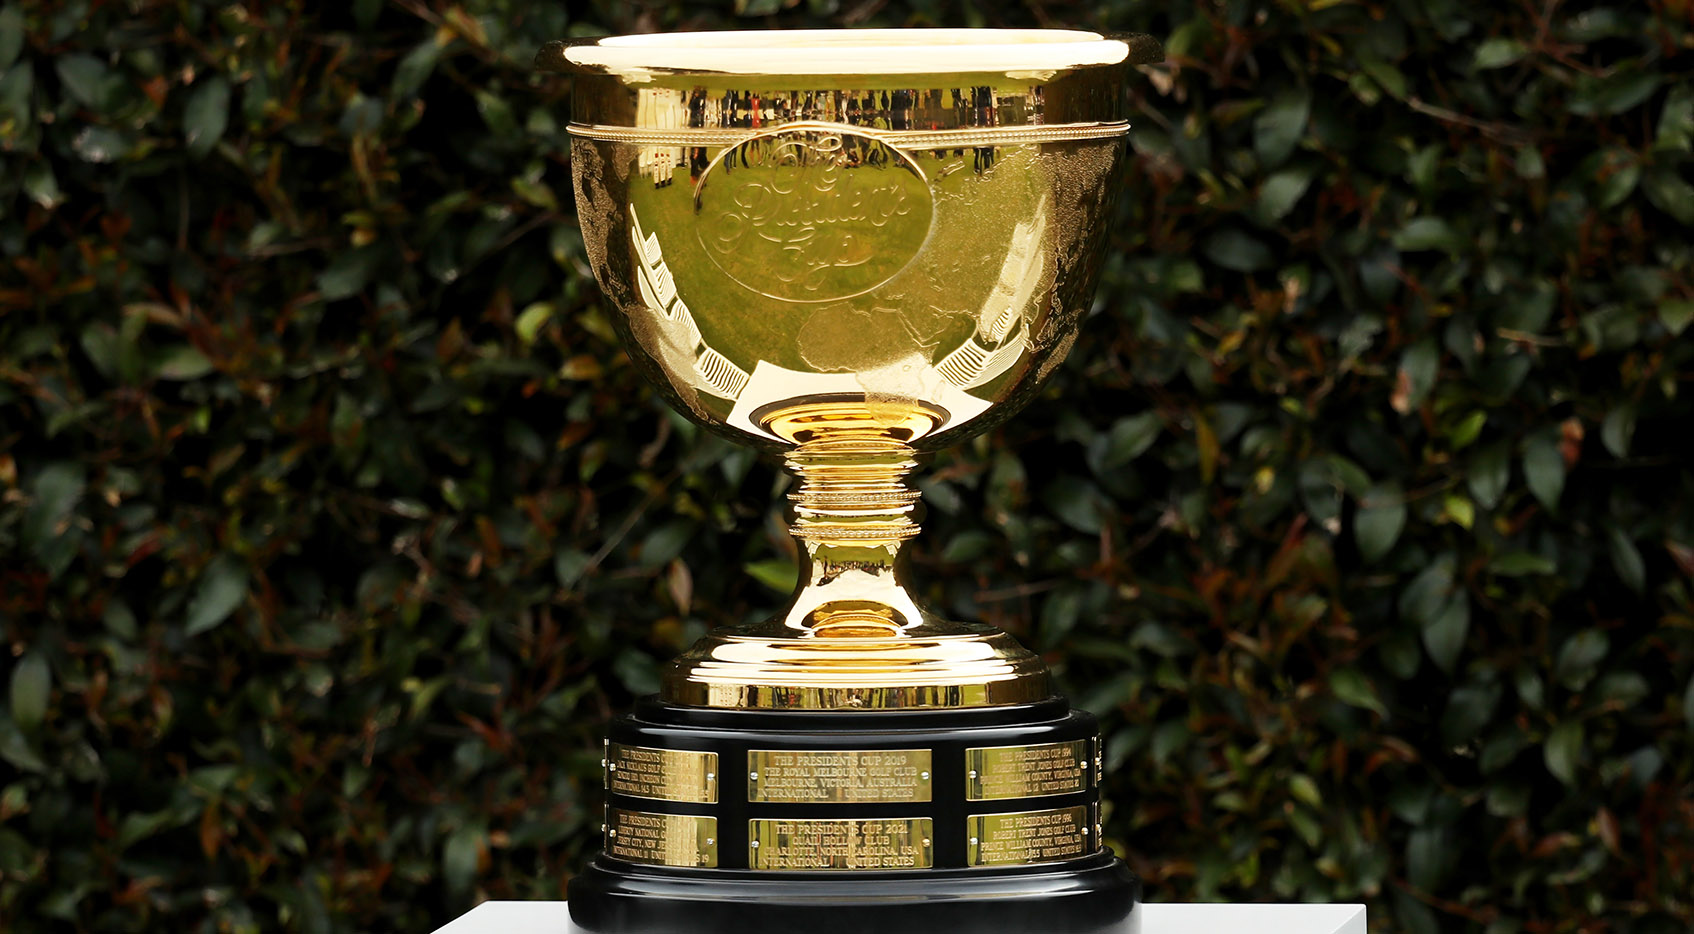 Presidents Cup: Match previews for Day 1